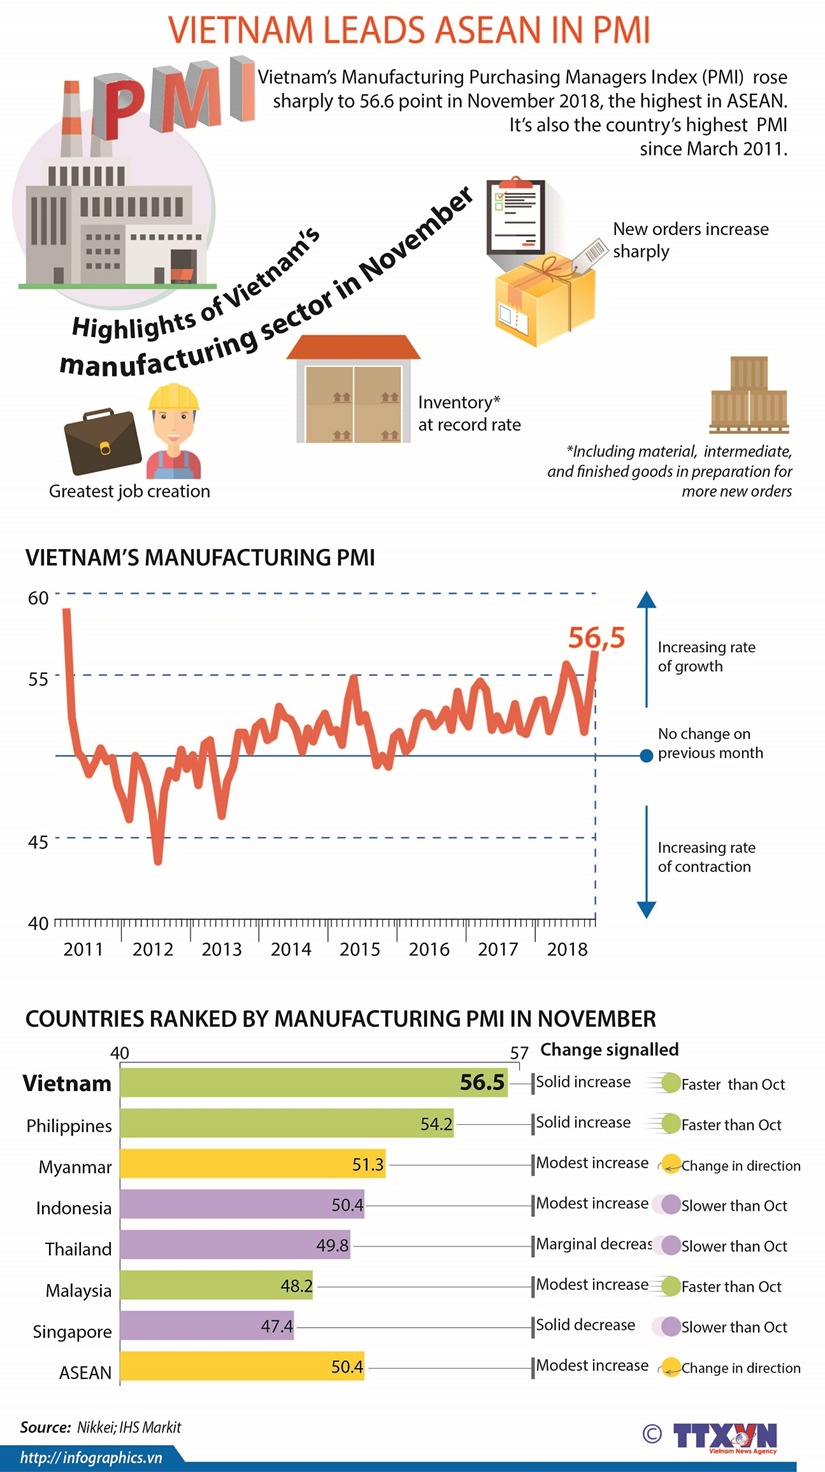 Vietnam leads ASEAN in PMI hinh anh 1